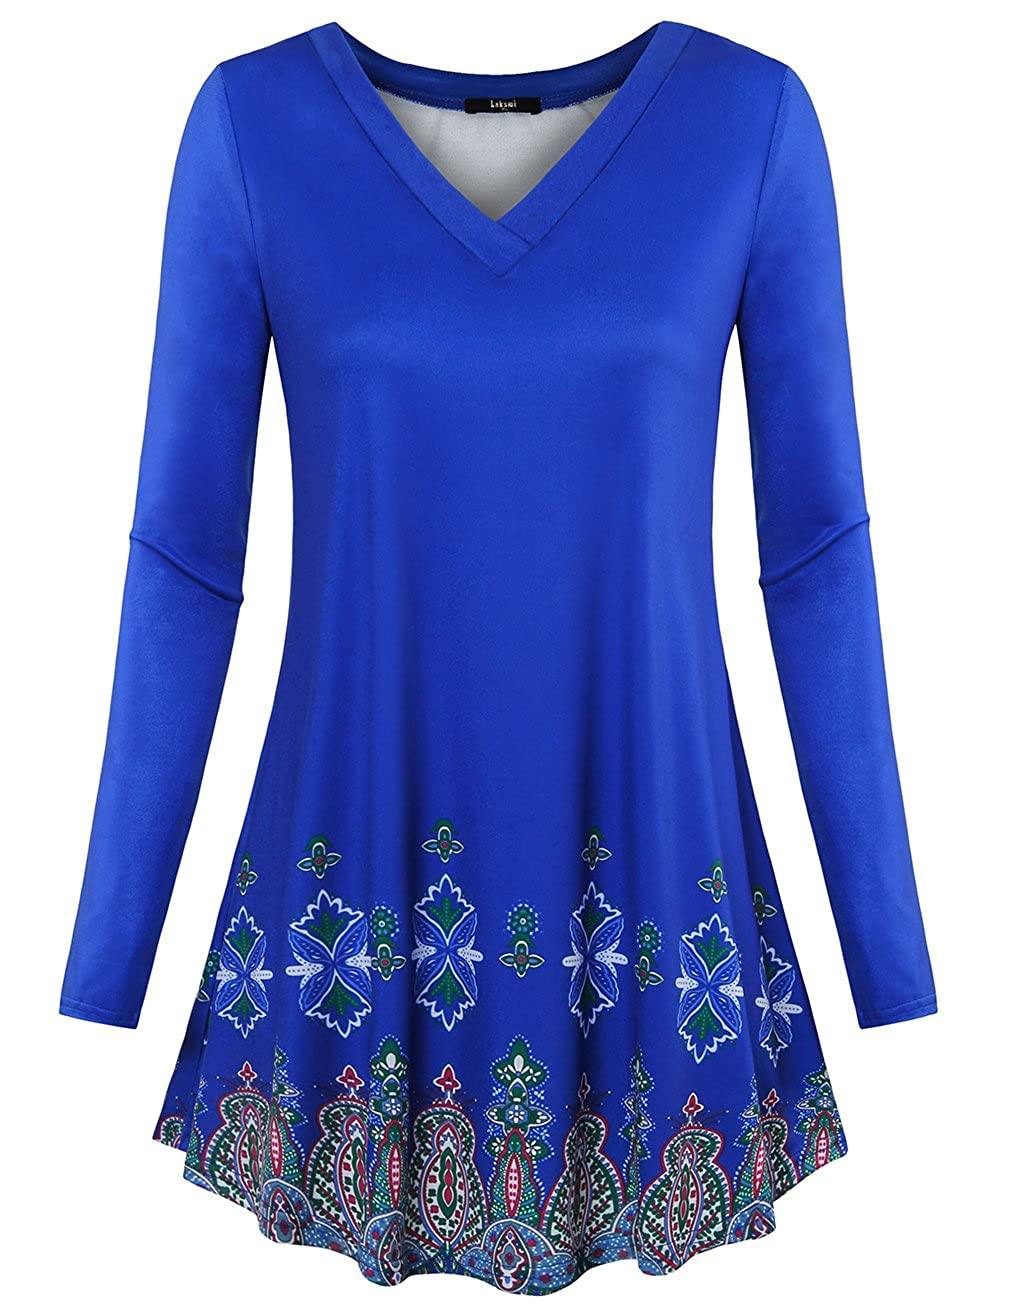 aae7b805c4d Simple designs grace the front of this feminine Laksmi tunic tops,completing  with long cozy sleeves and a casual flowy A-line hem.